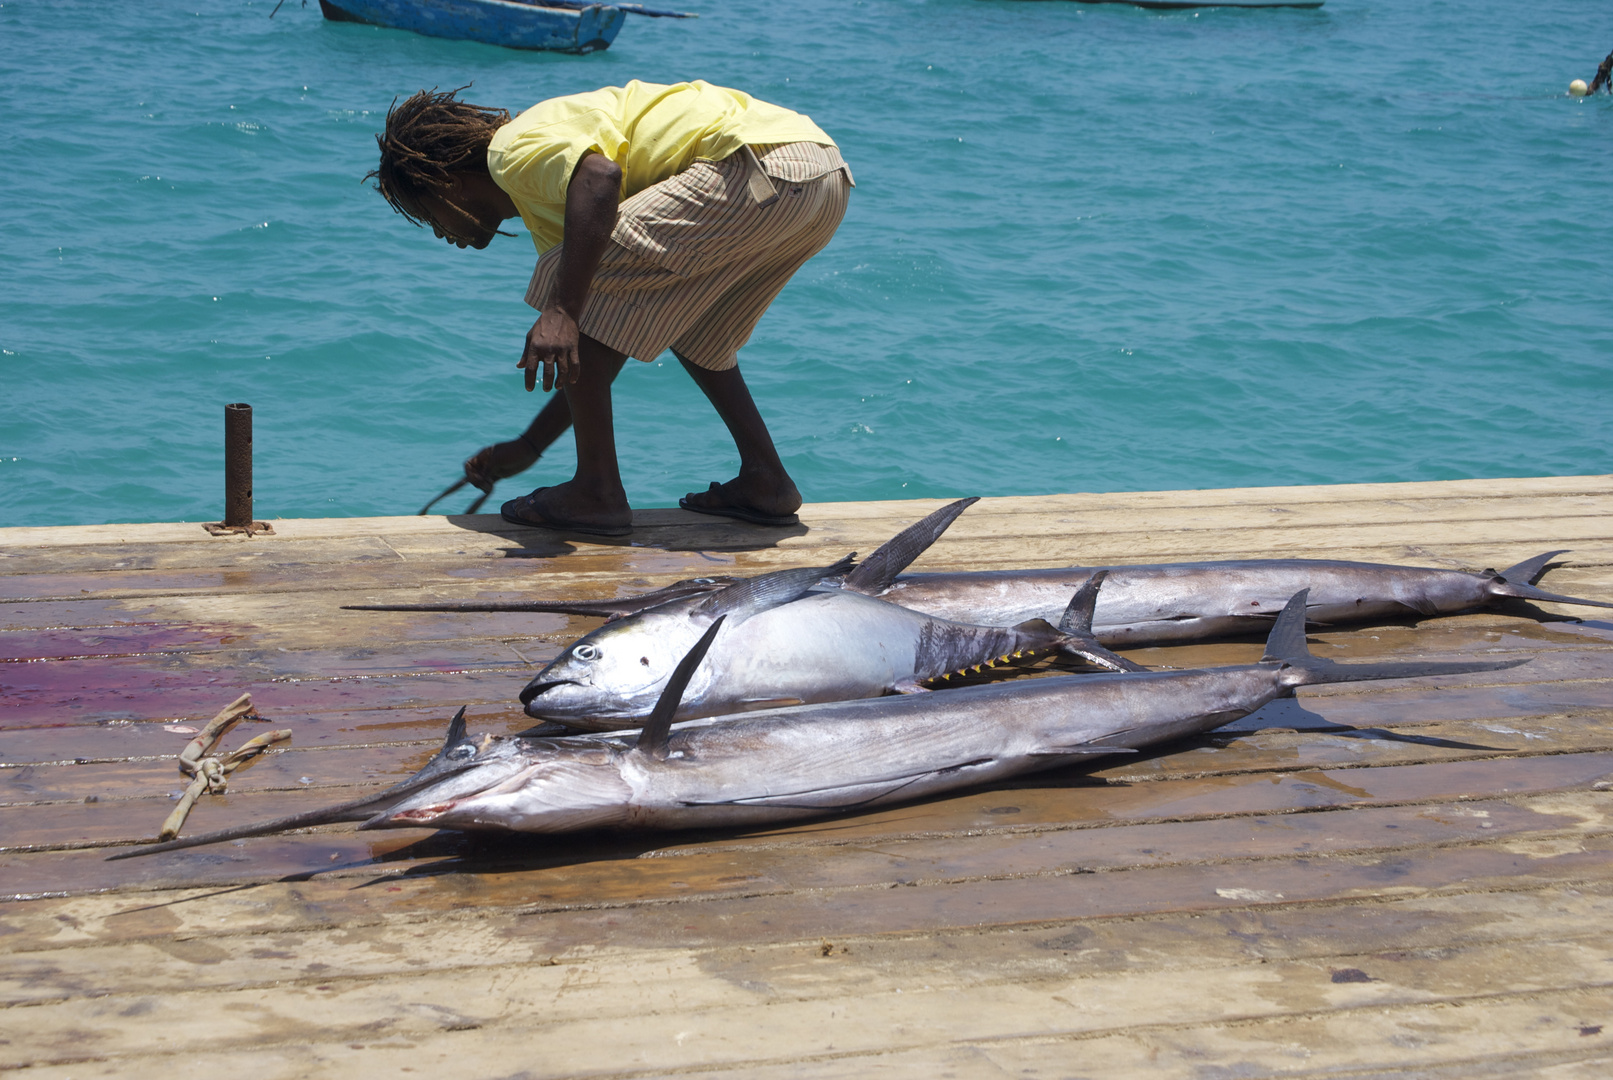 Catch of the day. Cape Verde, 2011